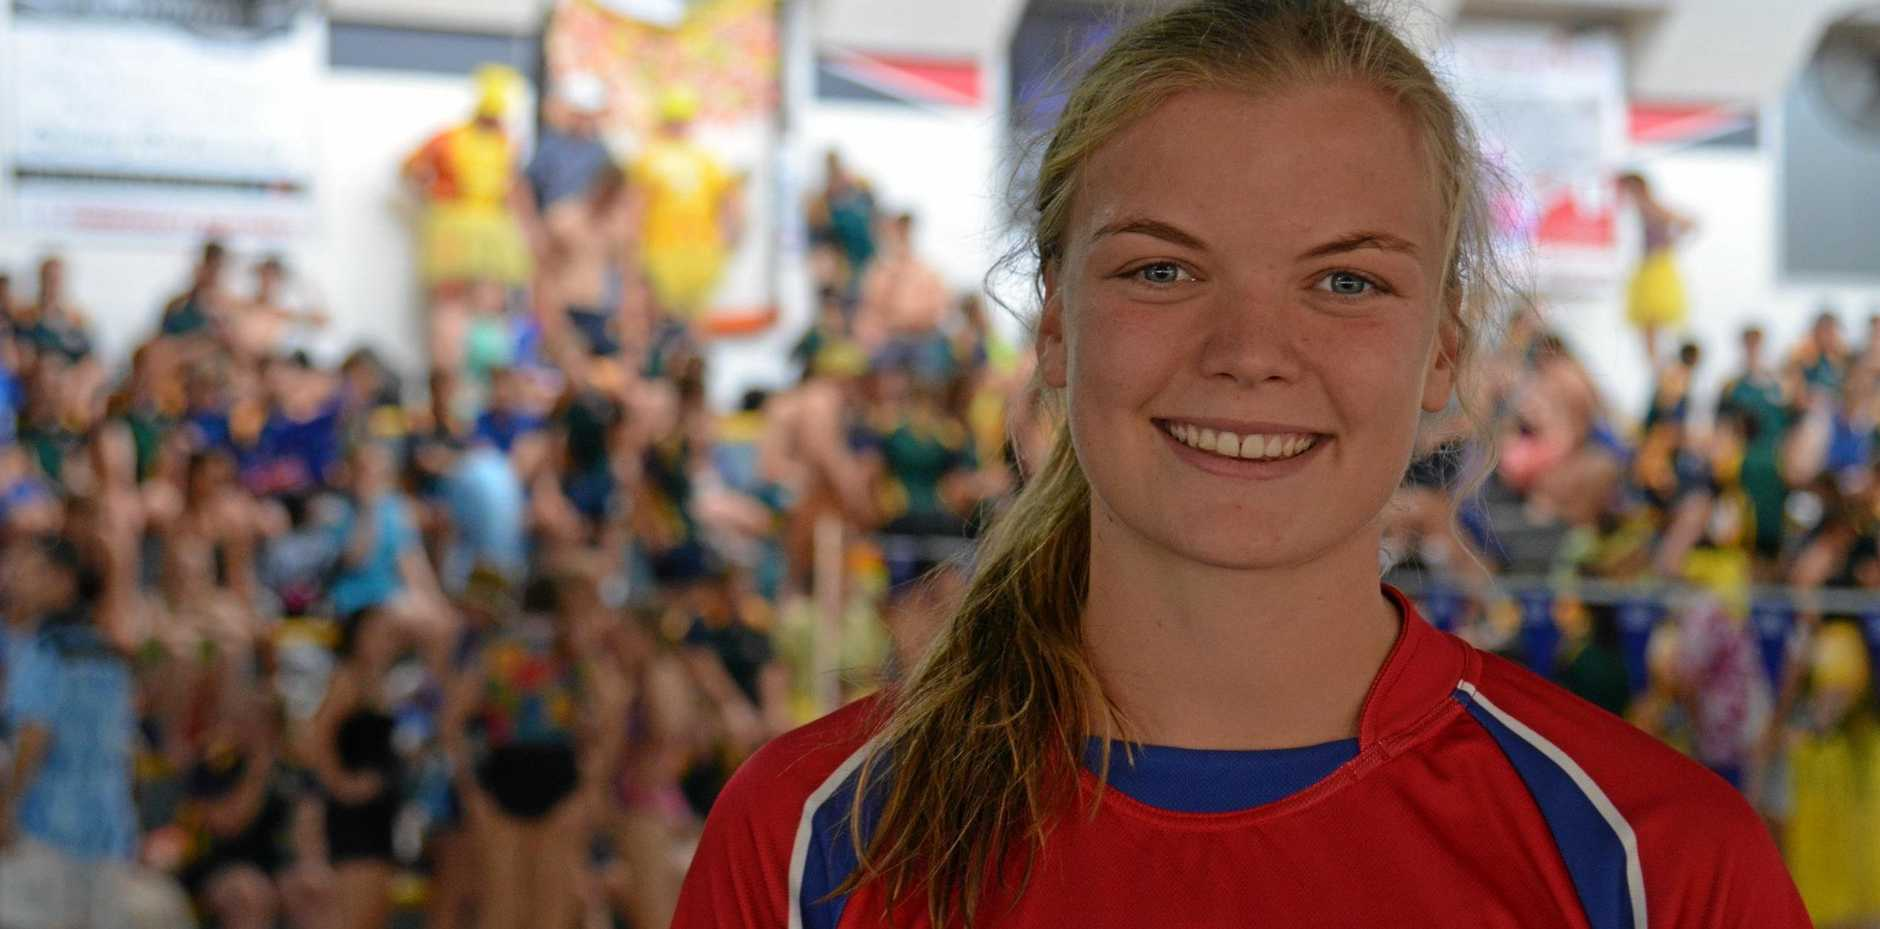 16-year-old Caitlin Skaines broke five records at the Assumption College swimming carnival on February 1, 2019.